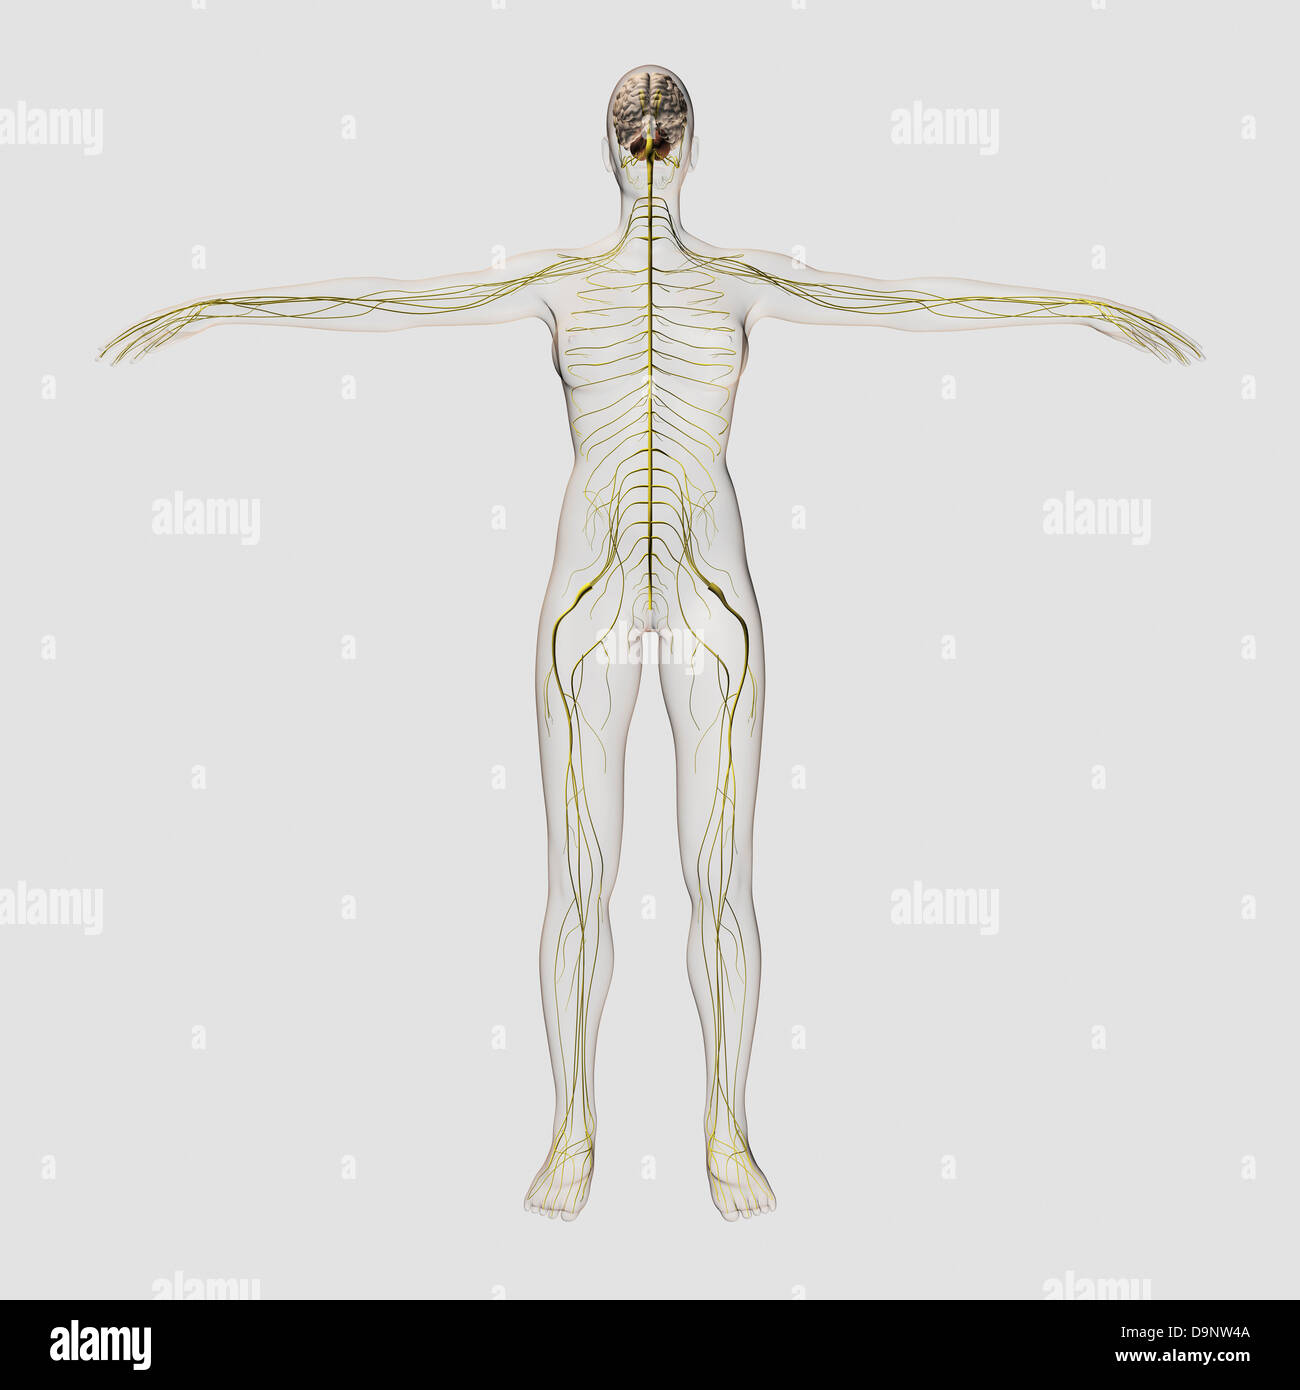 Medical illustration of the human nervous system and brain, full frontal view. - Stock Image